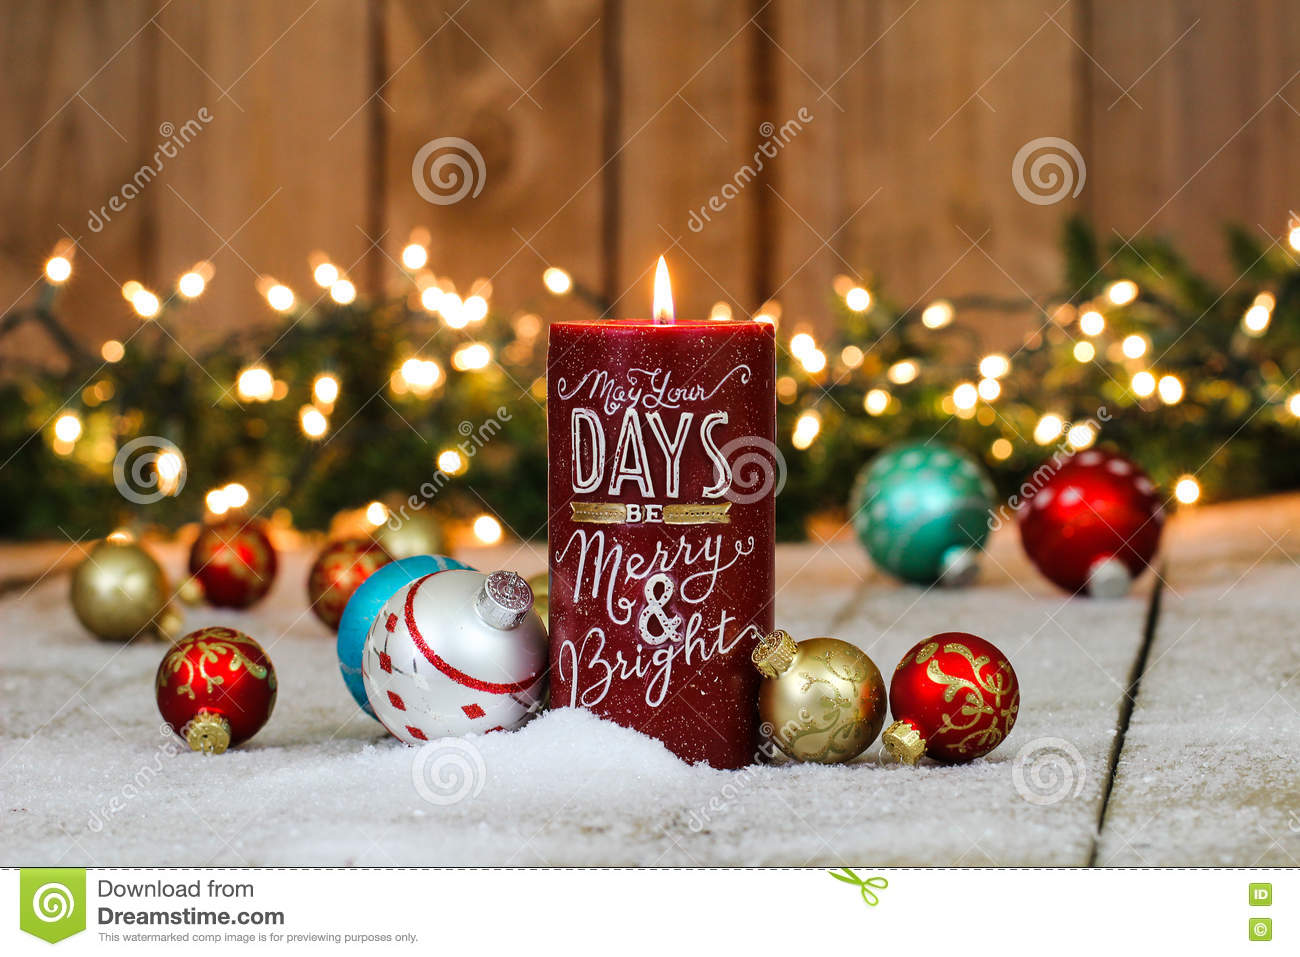 christmas background with red candle colorful ornaments and string of holiday lights and garland border in snow teal blue silver gold red green - Teal And Gold Christmas Decorations